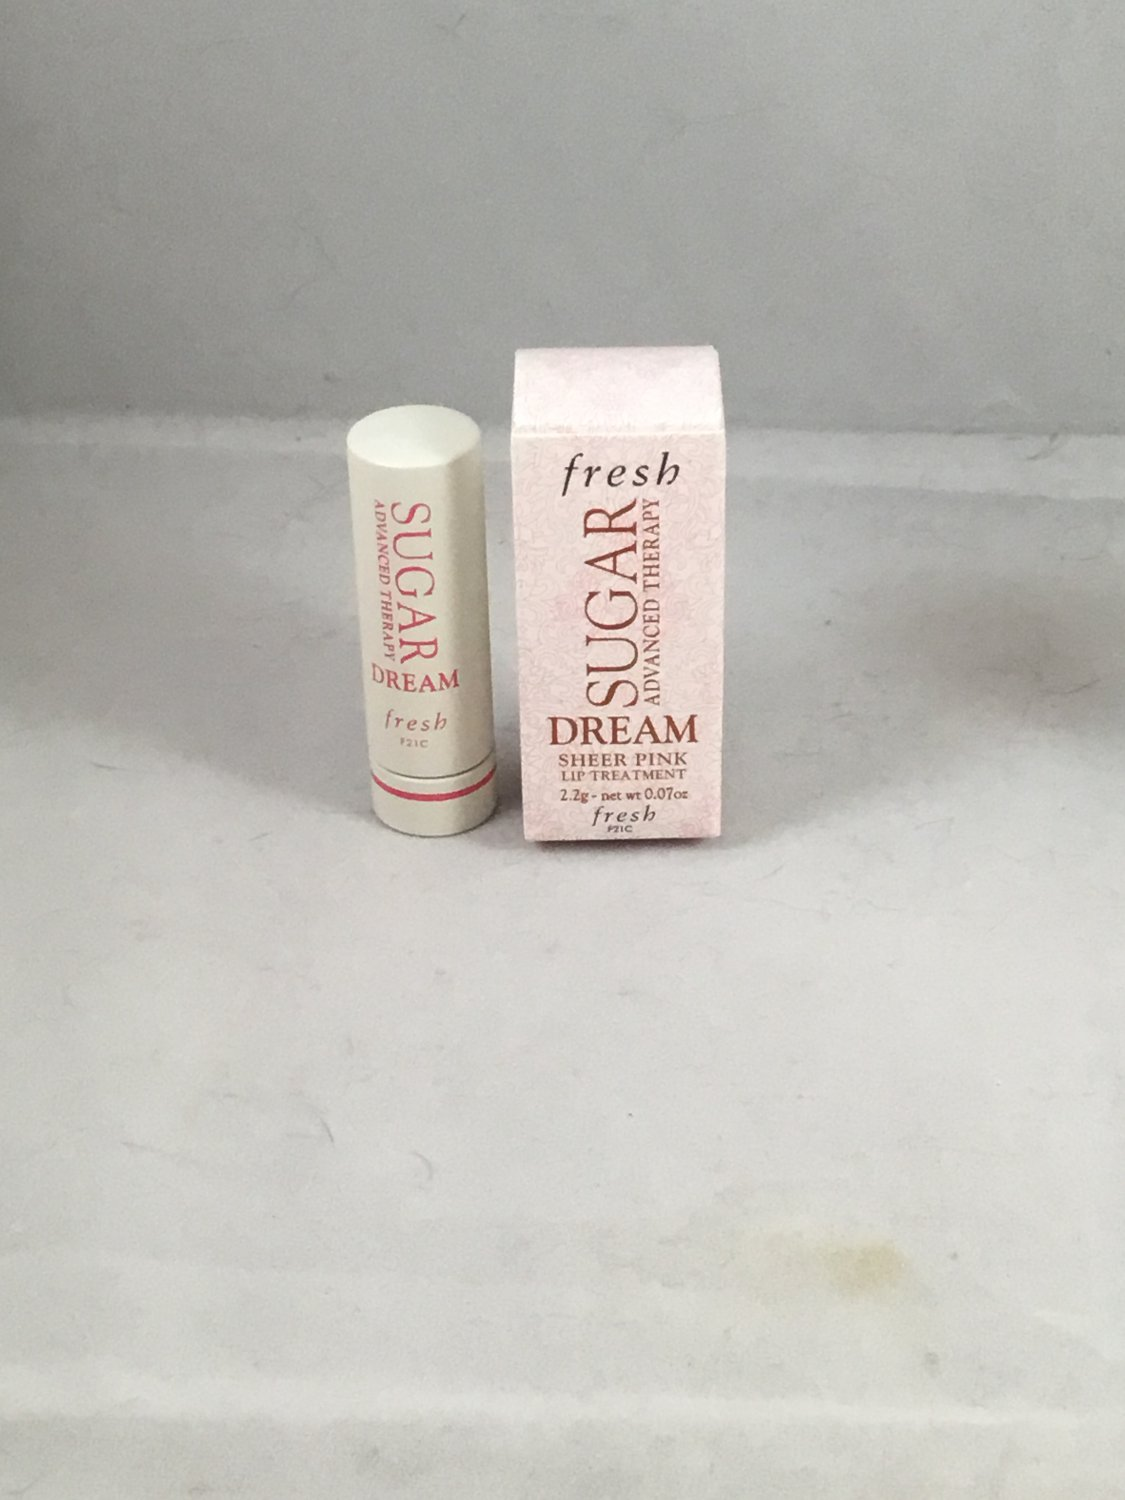 Fresh Sugar Advanced Therapy Lip Treatment Dream Sheer Pink travel size Tinted Balm